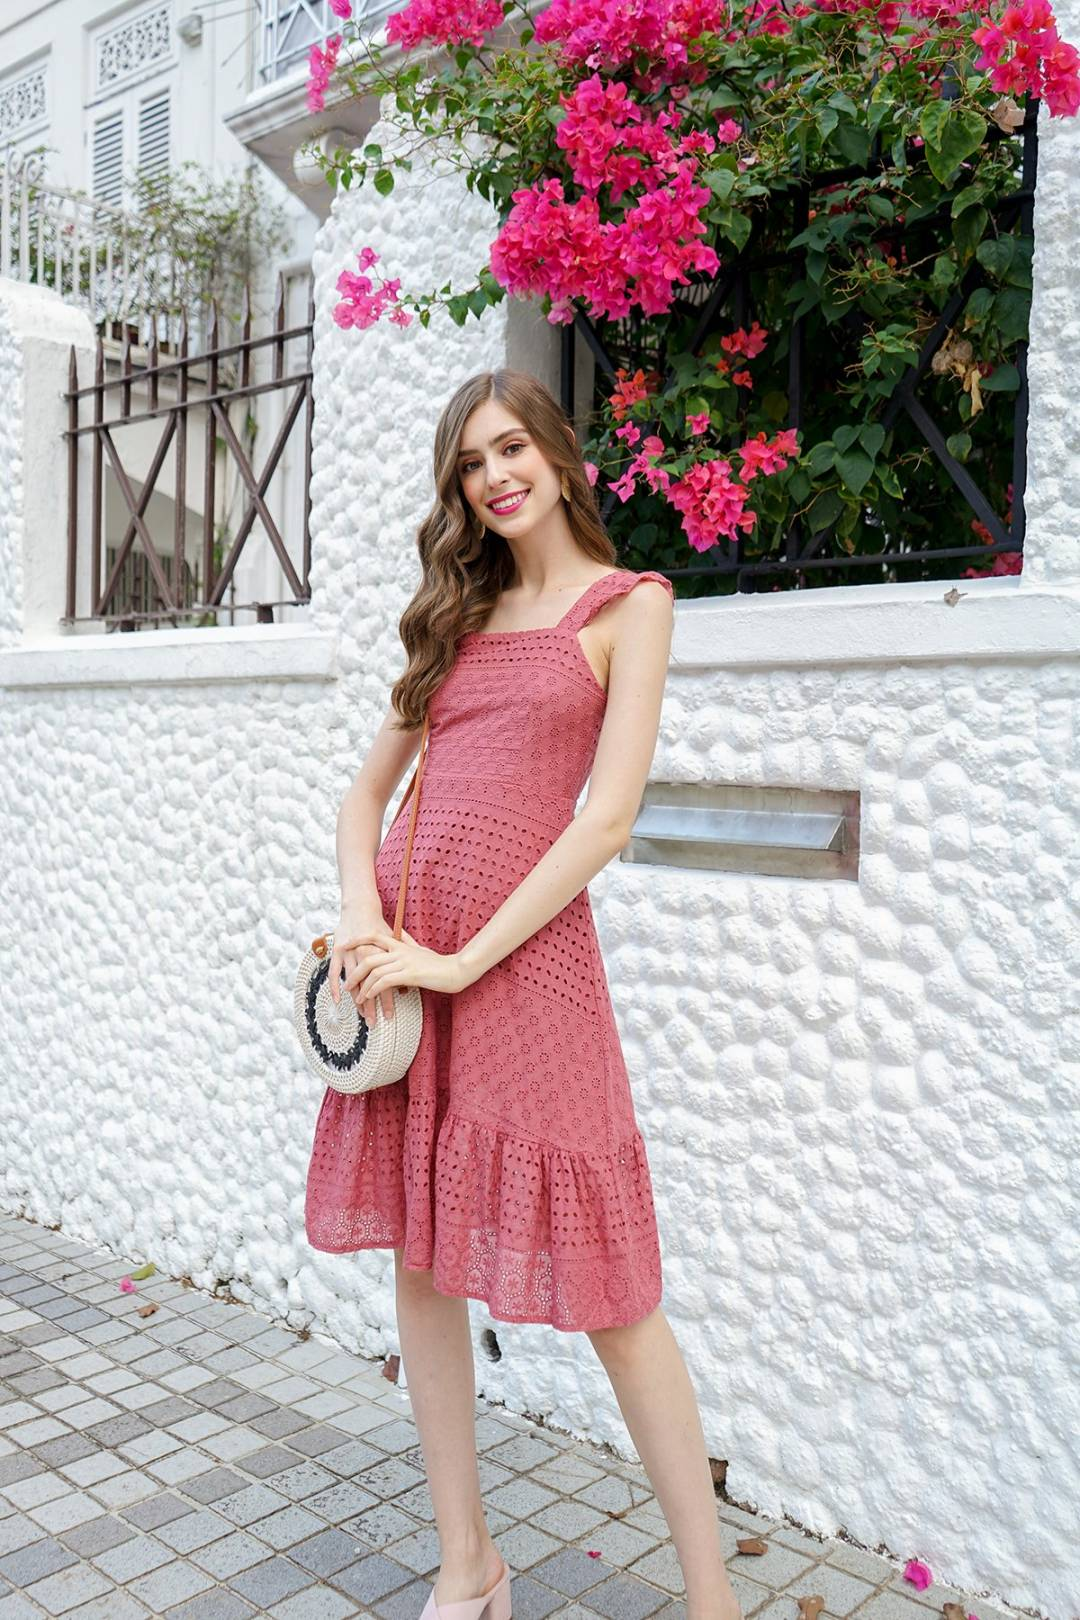 MADEBYNM LAURALIE FRILLED A-LINE EYELET DRESS IN TEA ROSE [XS/S/M/L/XL]